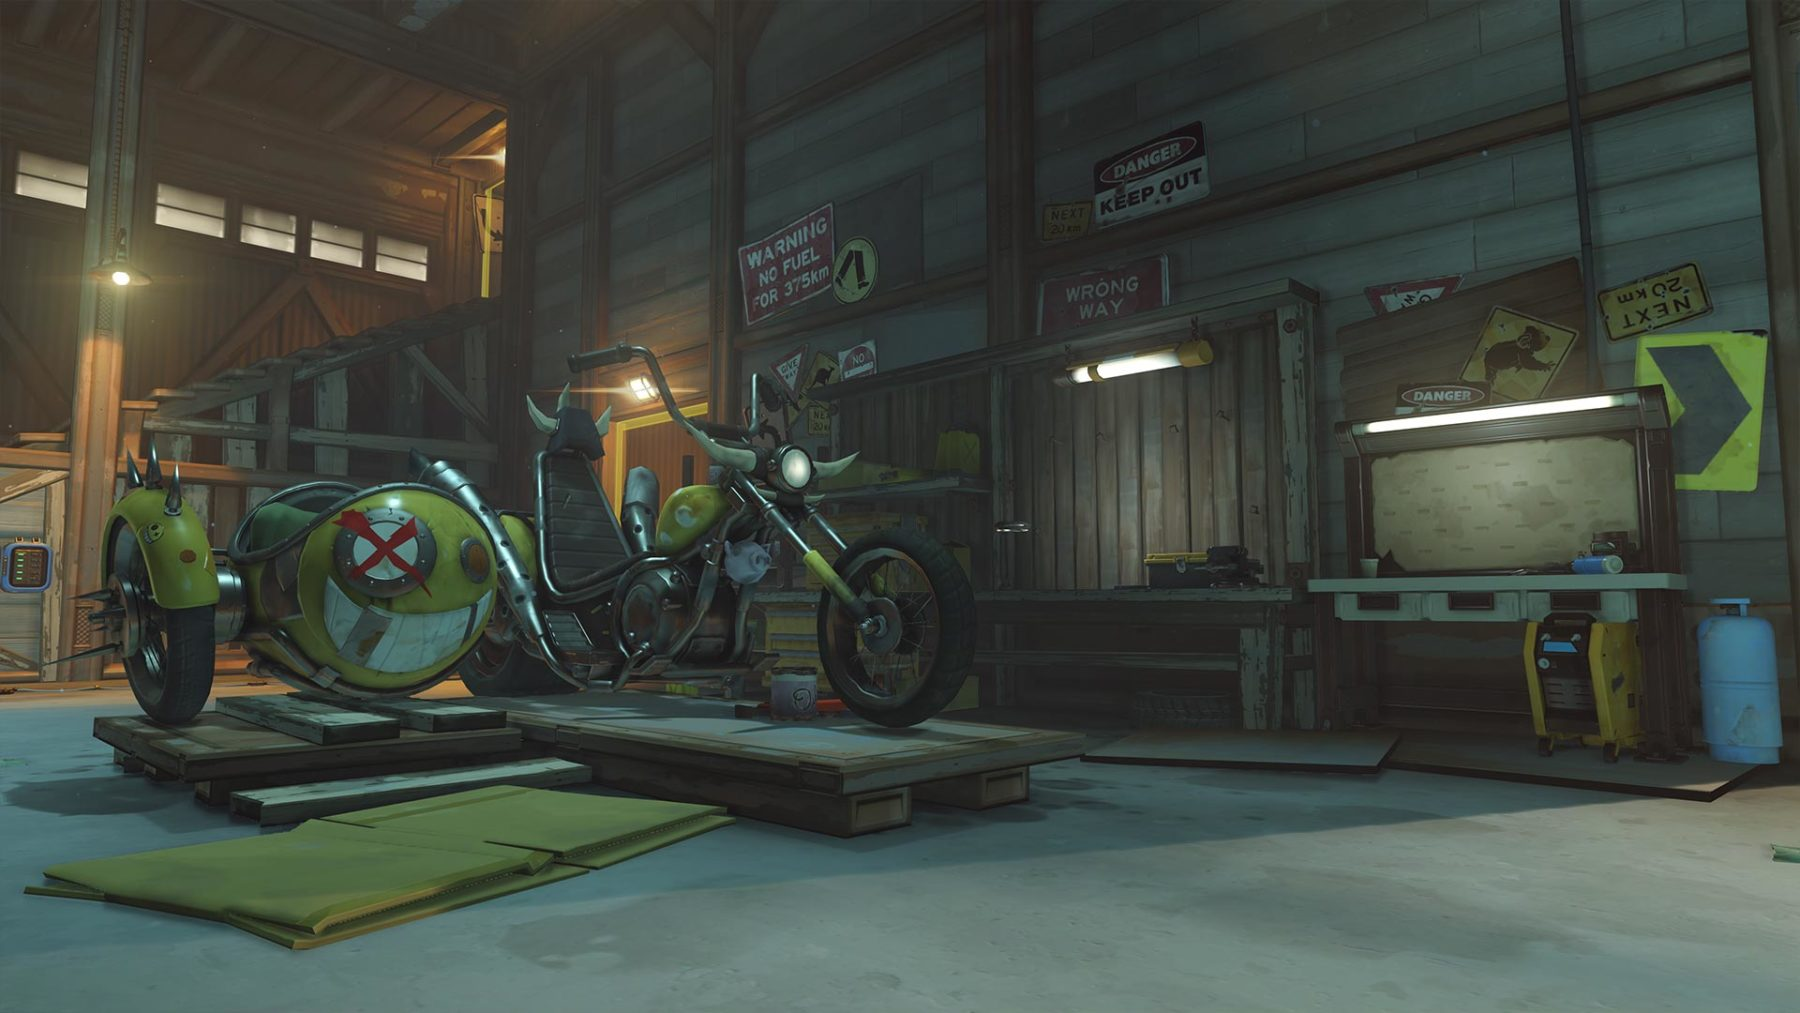 Screenshot aus Overwatch: Junkertwon Bike